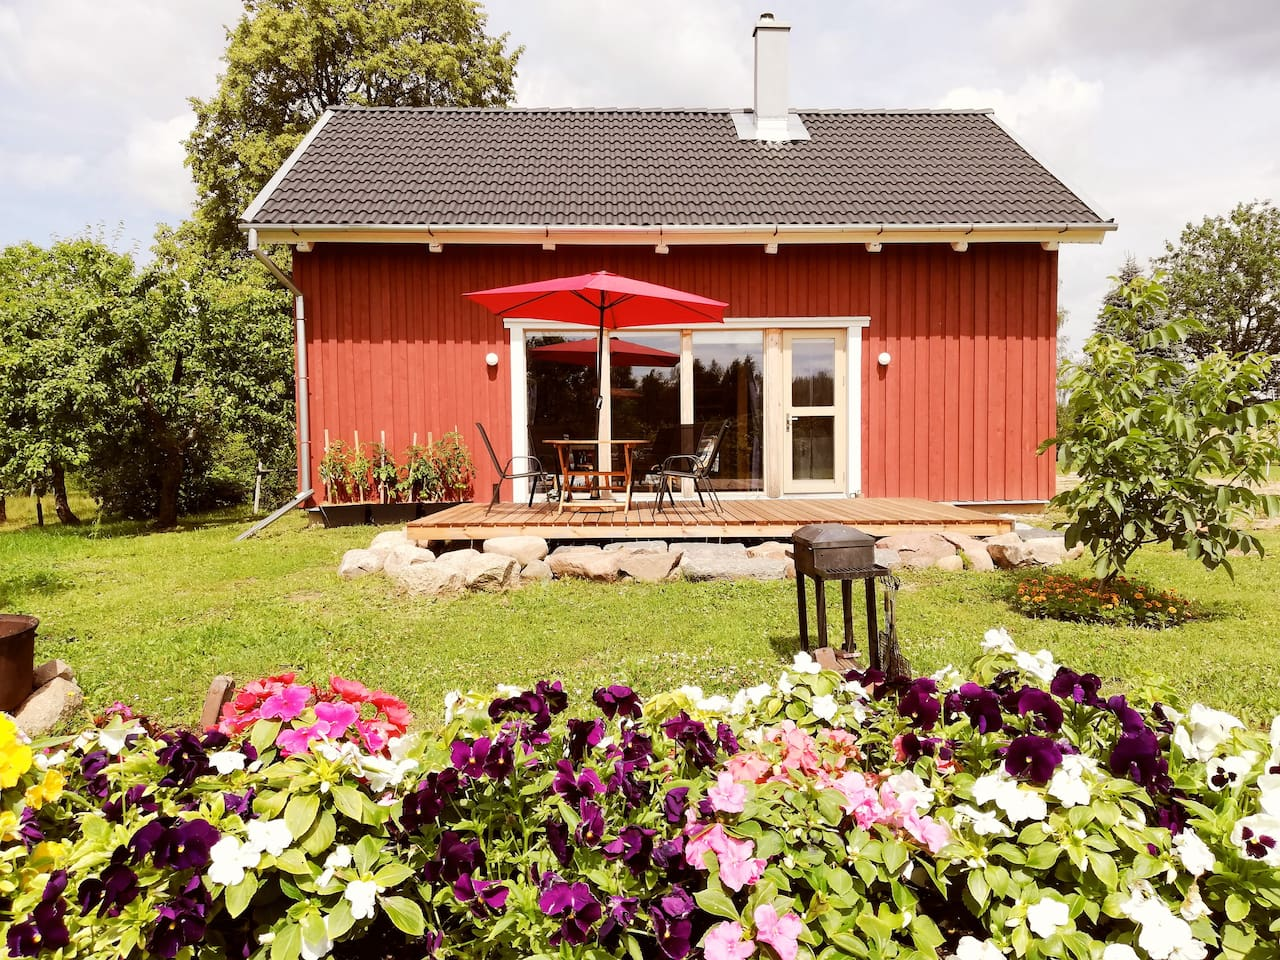 This rustic barn has been given new life with an elegant studio layout providing a spacious living area, convenient corner kitchen and bathroom on the first floor while a second floor bedroom overlooks the main room from a balcony.